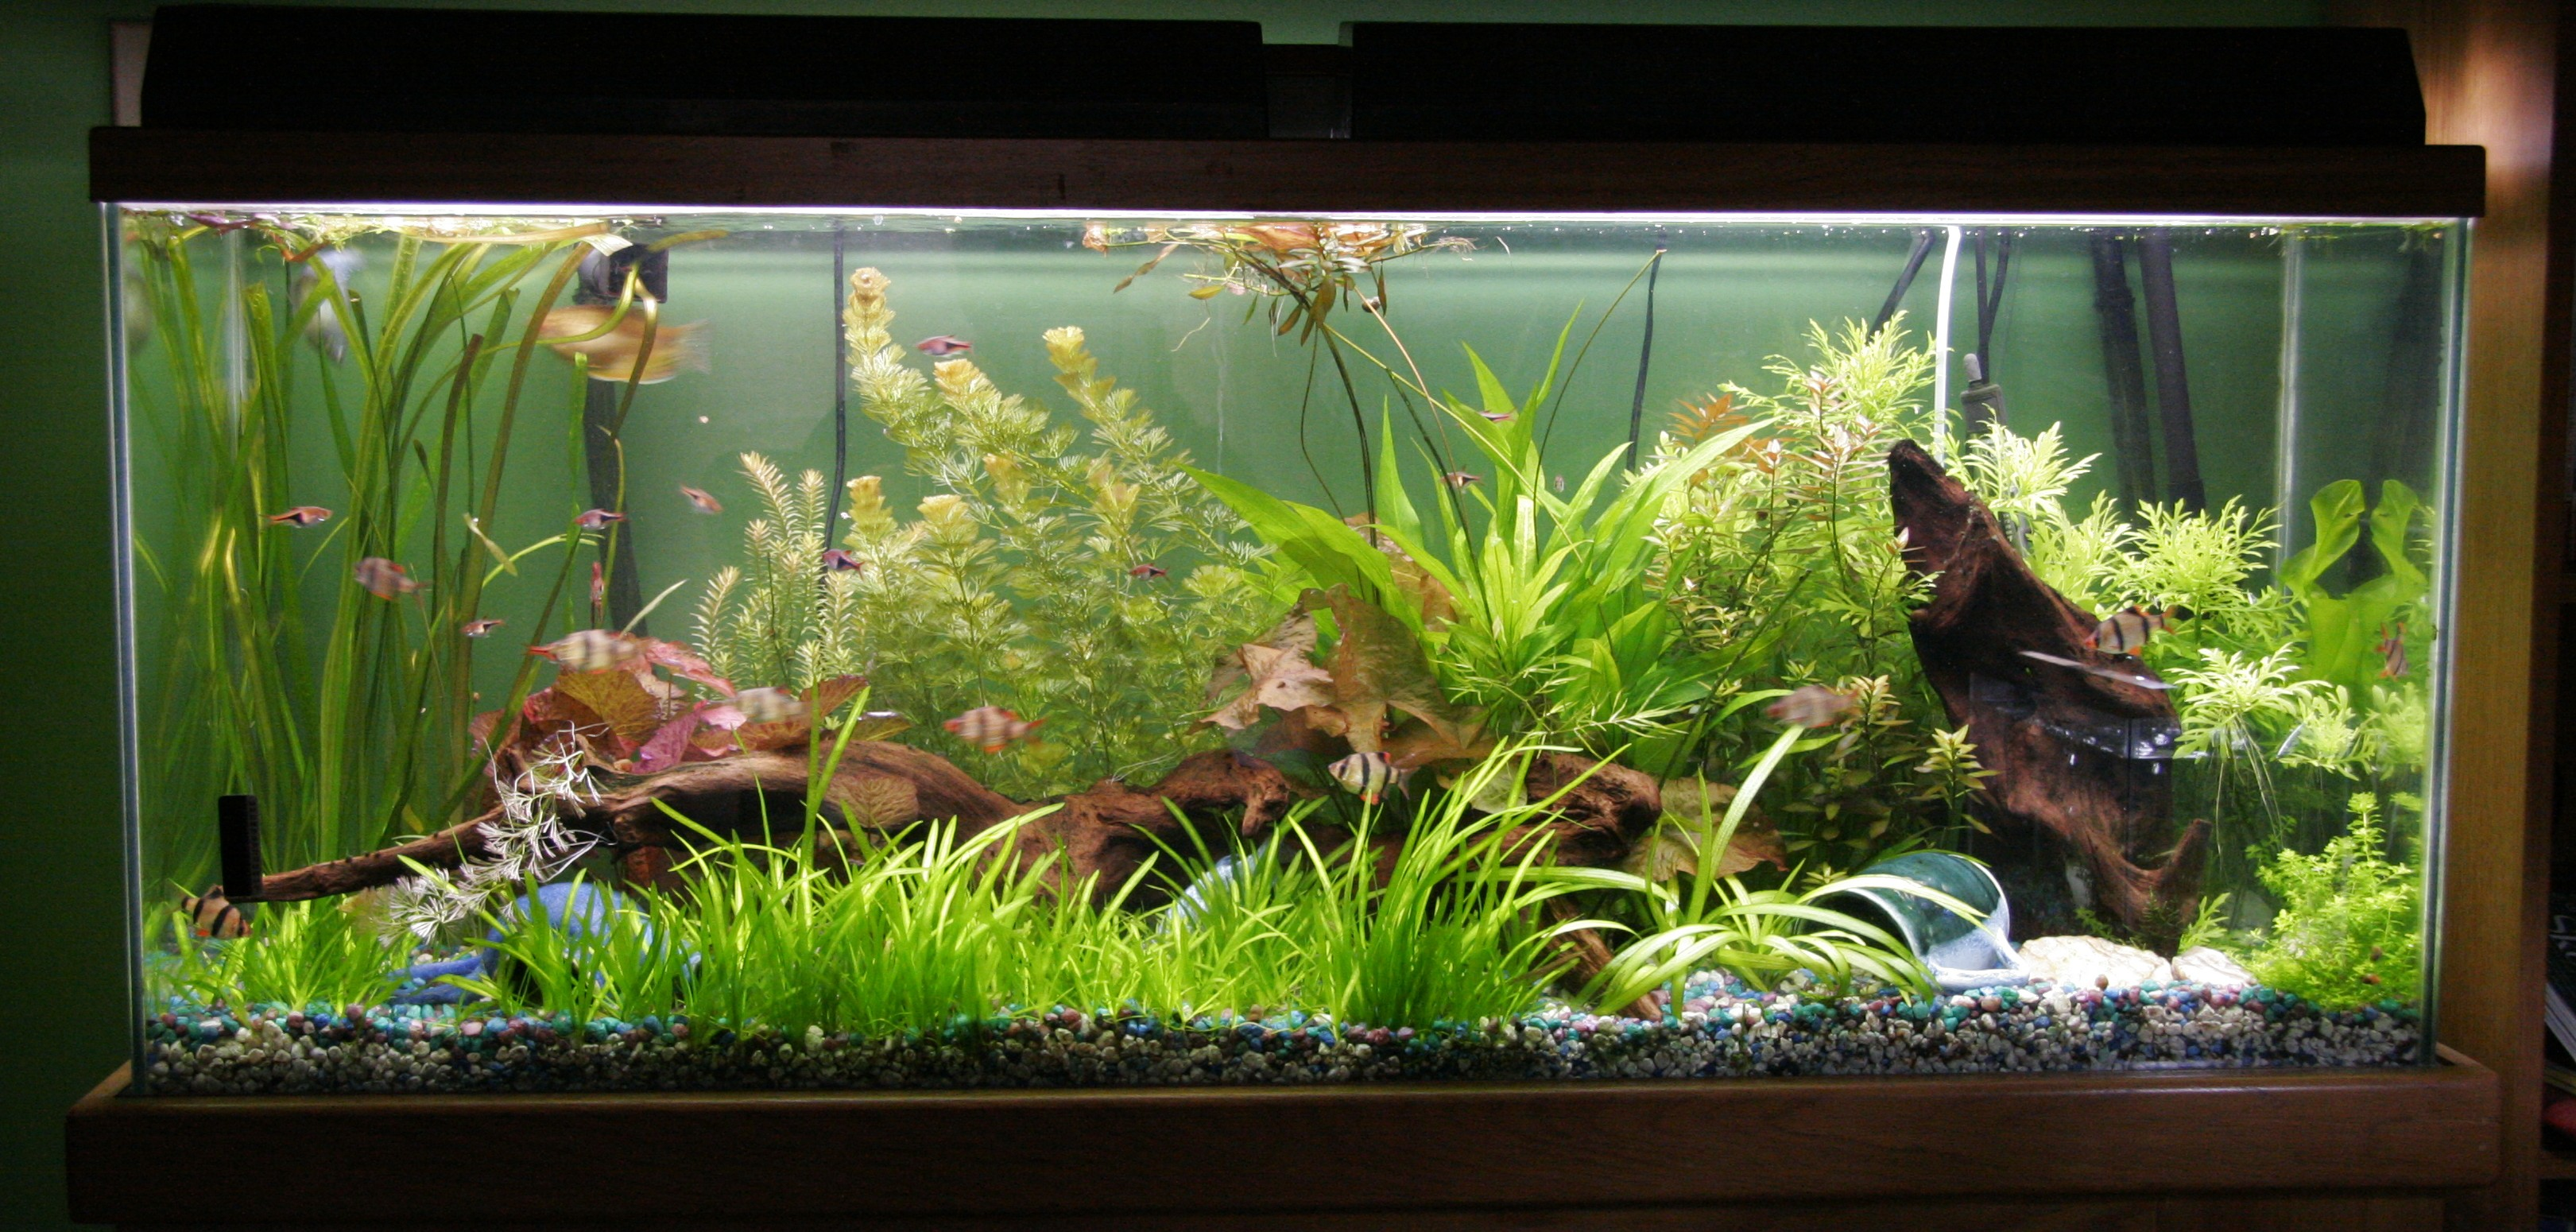 Freshwater aquarium fish ideas home decor ideas pics for 55 gallon aquarium decoration ideas